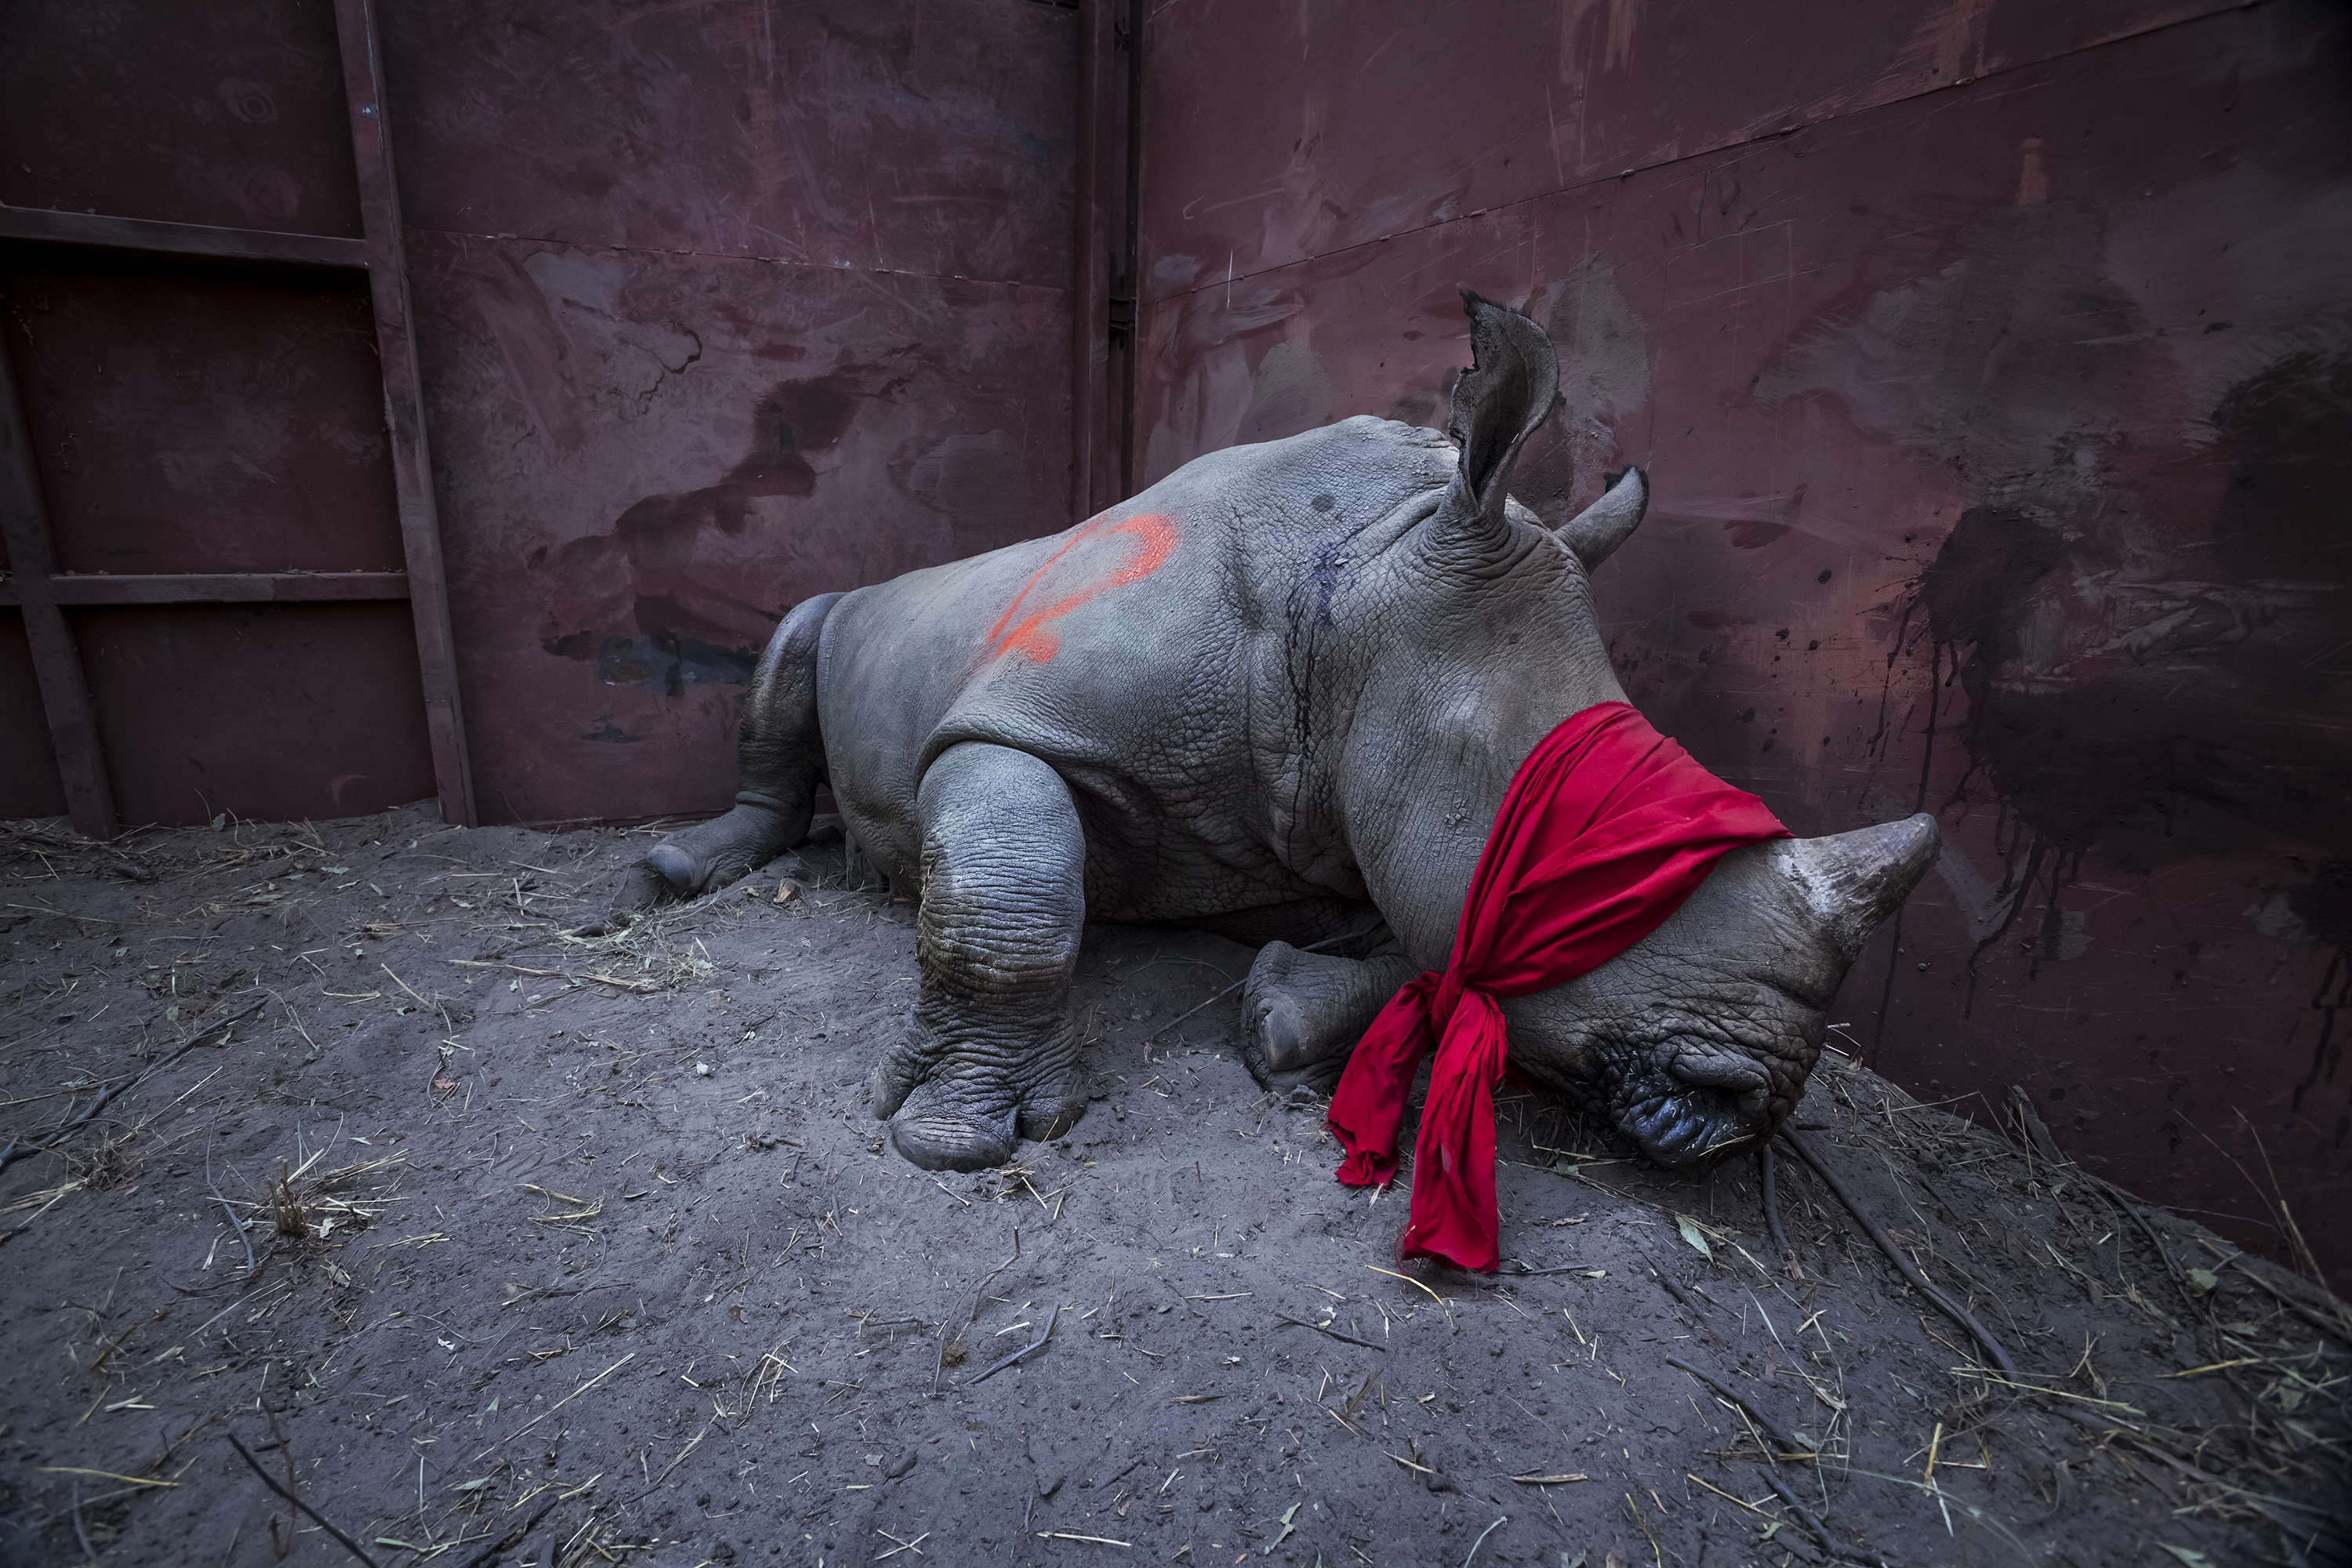 A young southern white rhinoceros, drugged and blindfolded, is about to be released into the wild in Okavango Delta, Botswana, after its relocation from South Africa for protection from poachers.